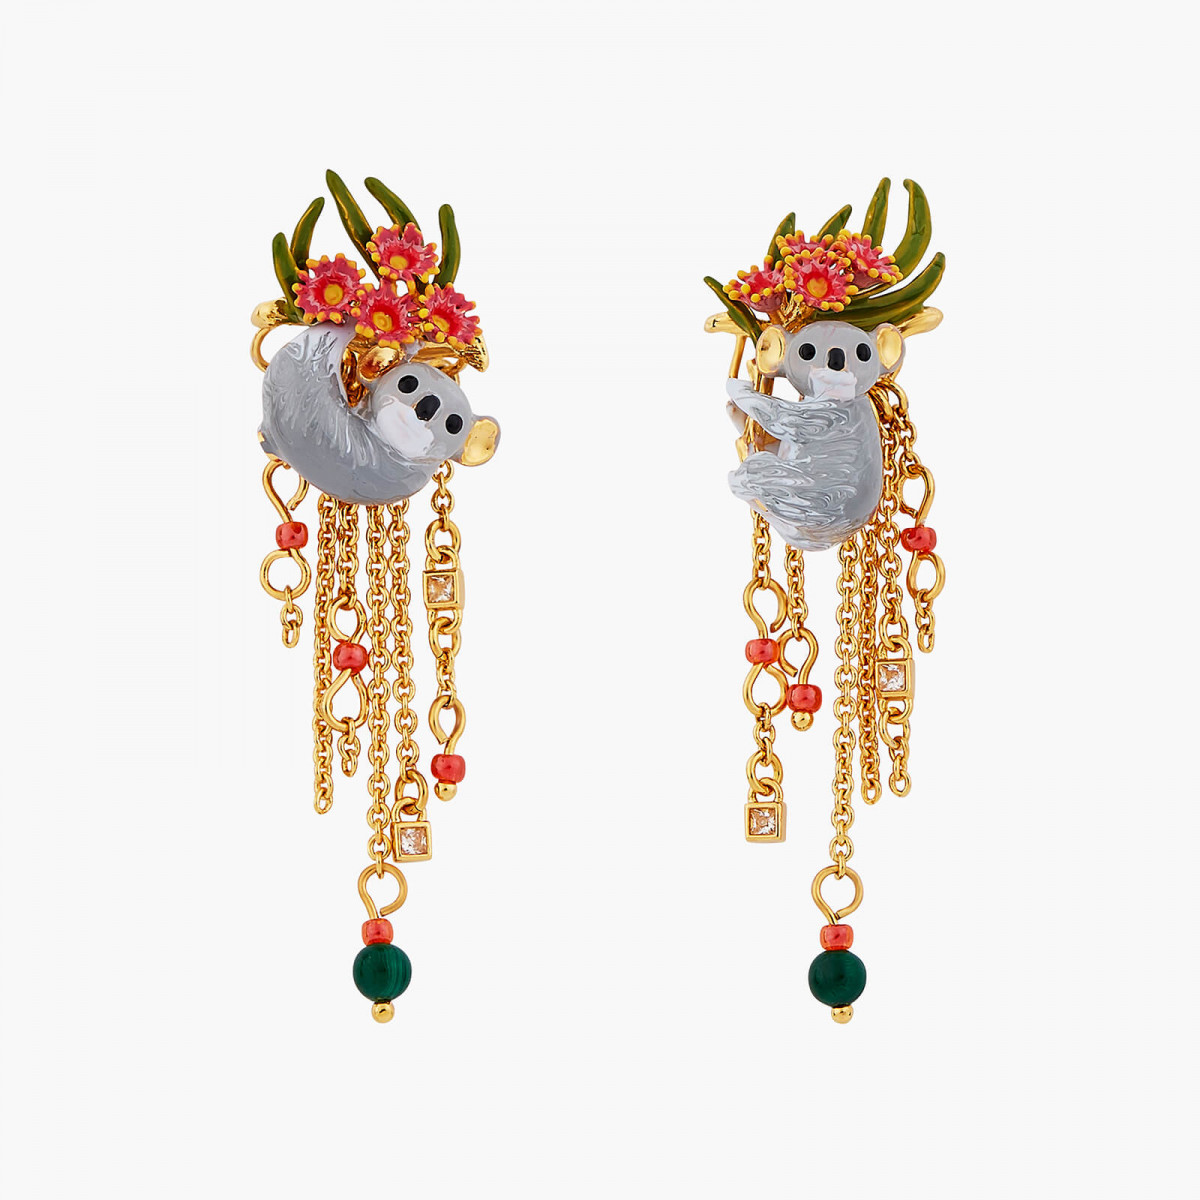 Squirrel and mushrooms earrings